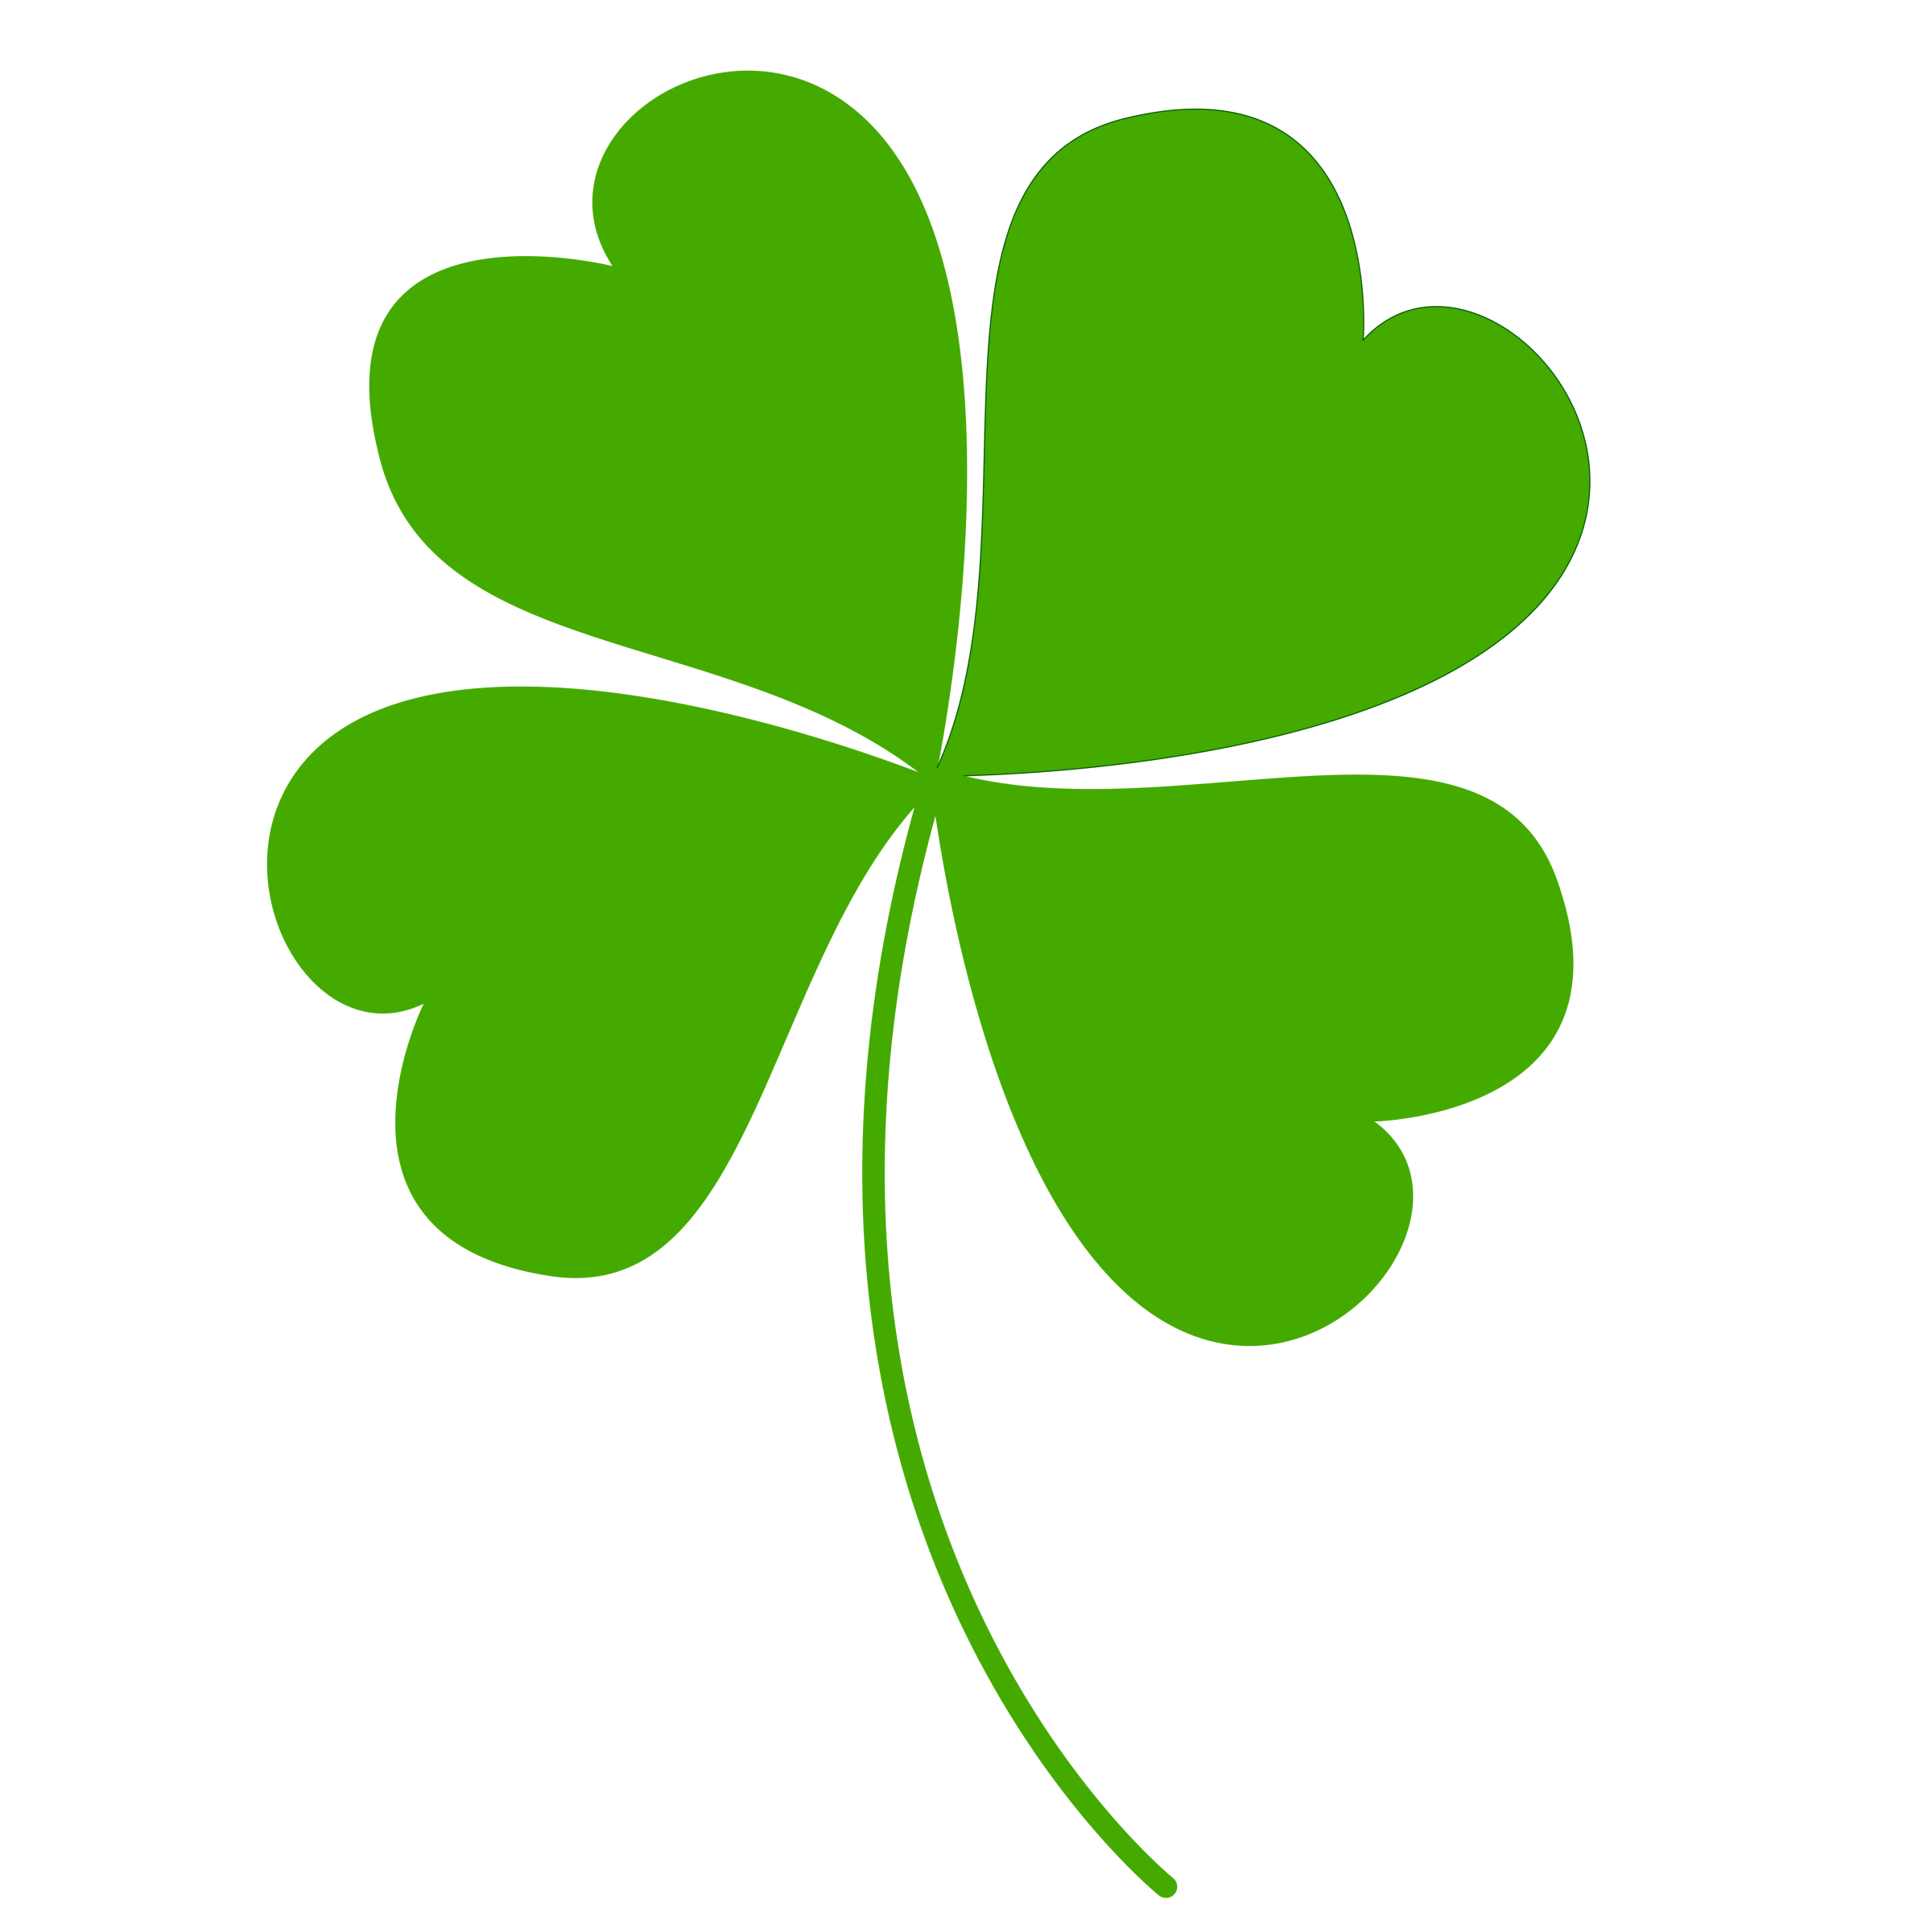 3 clipart leaf clover. Fundamentals images of four